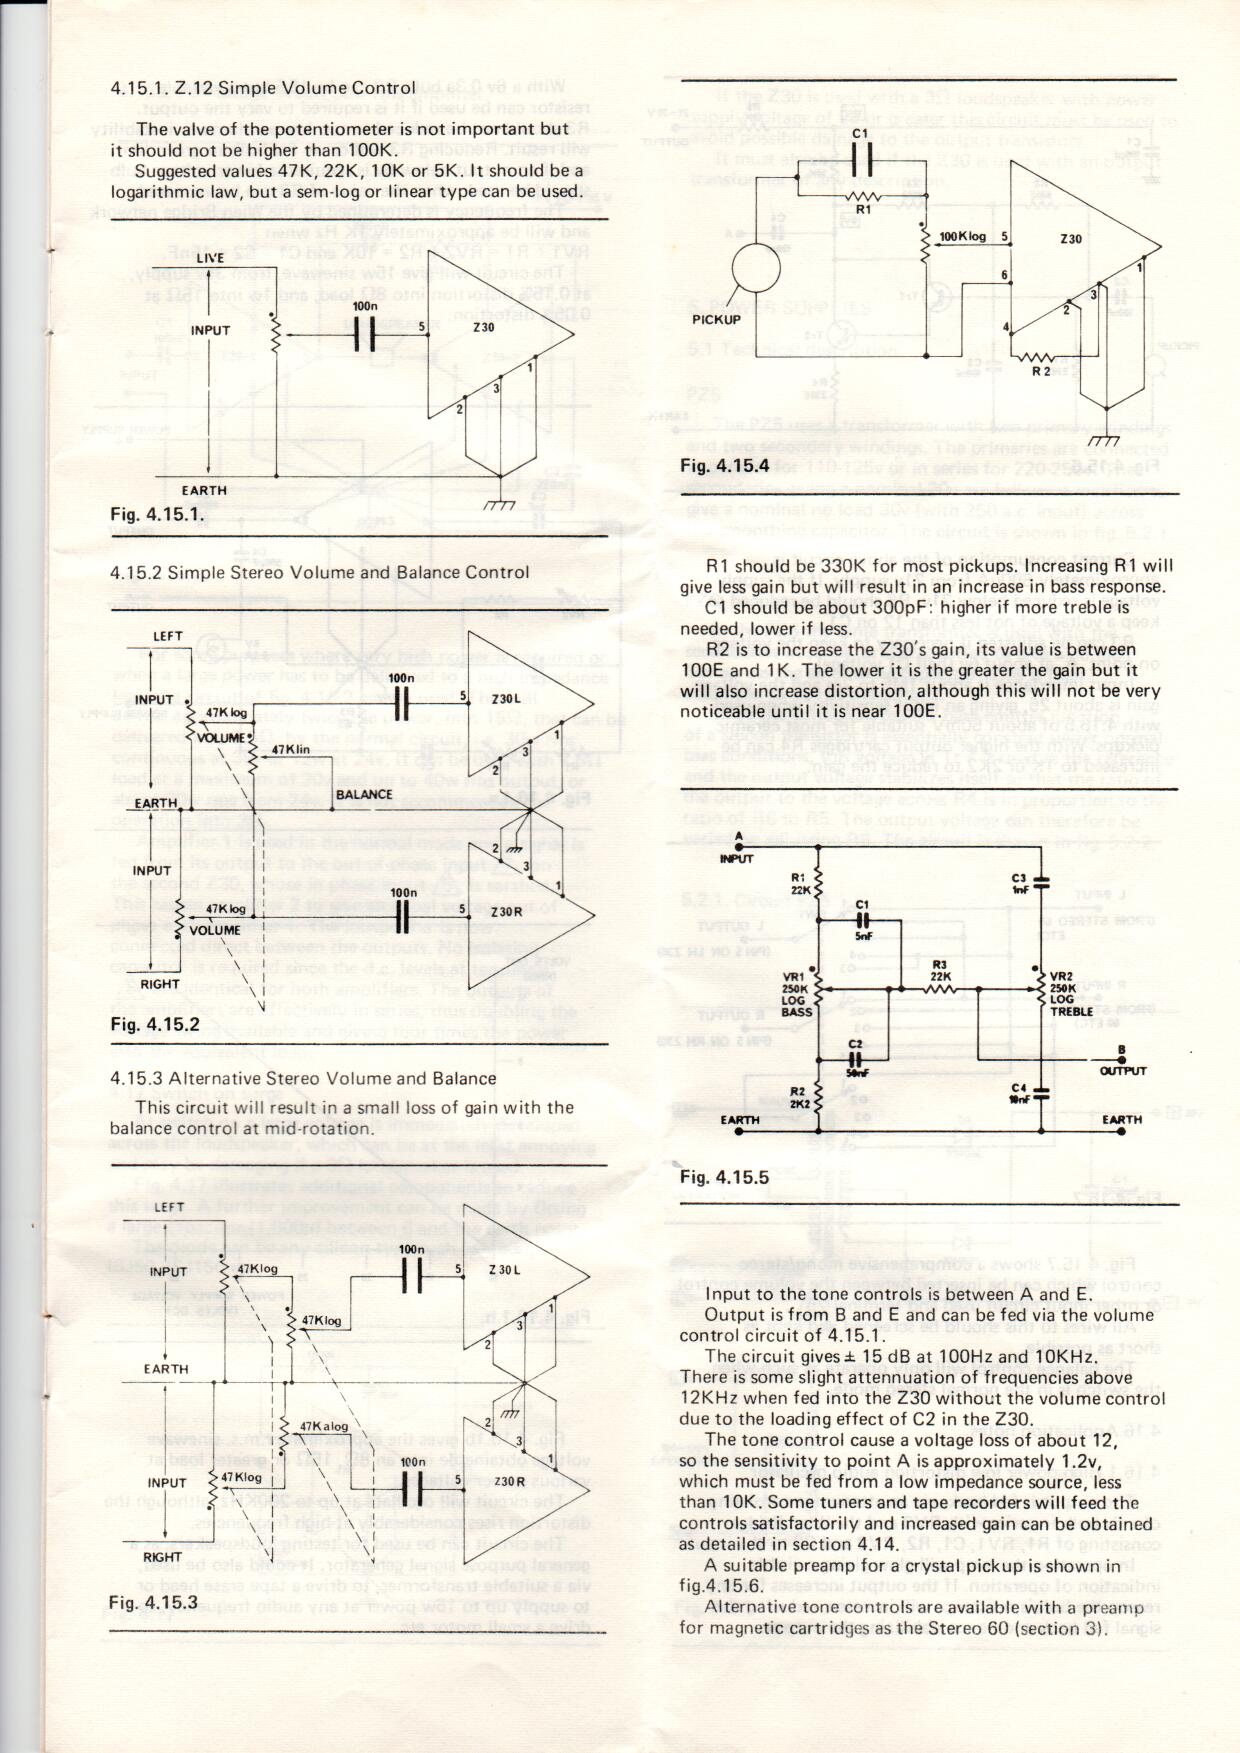 Sinclair Radionics Project 60 Manual Contents Tone Control Circuit Diagram 4151 Simple Volume